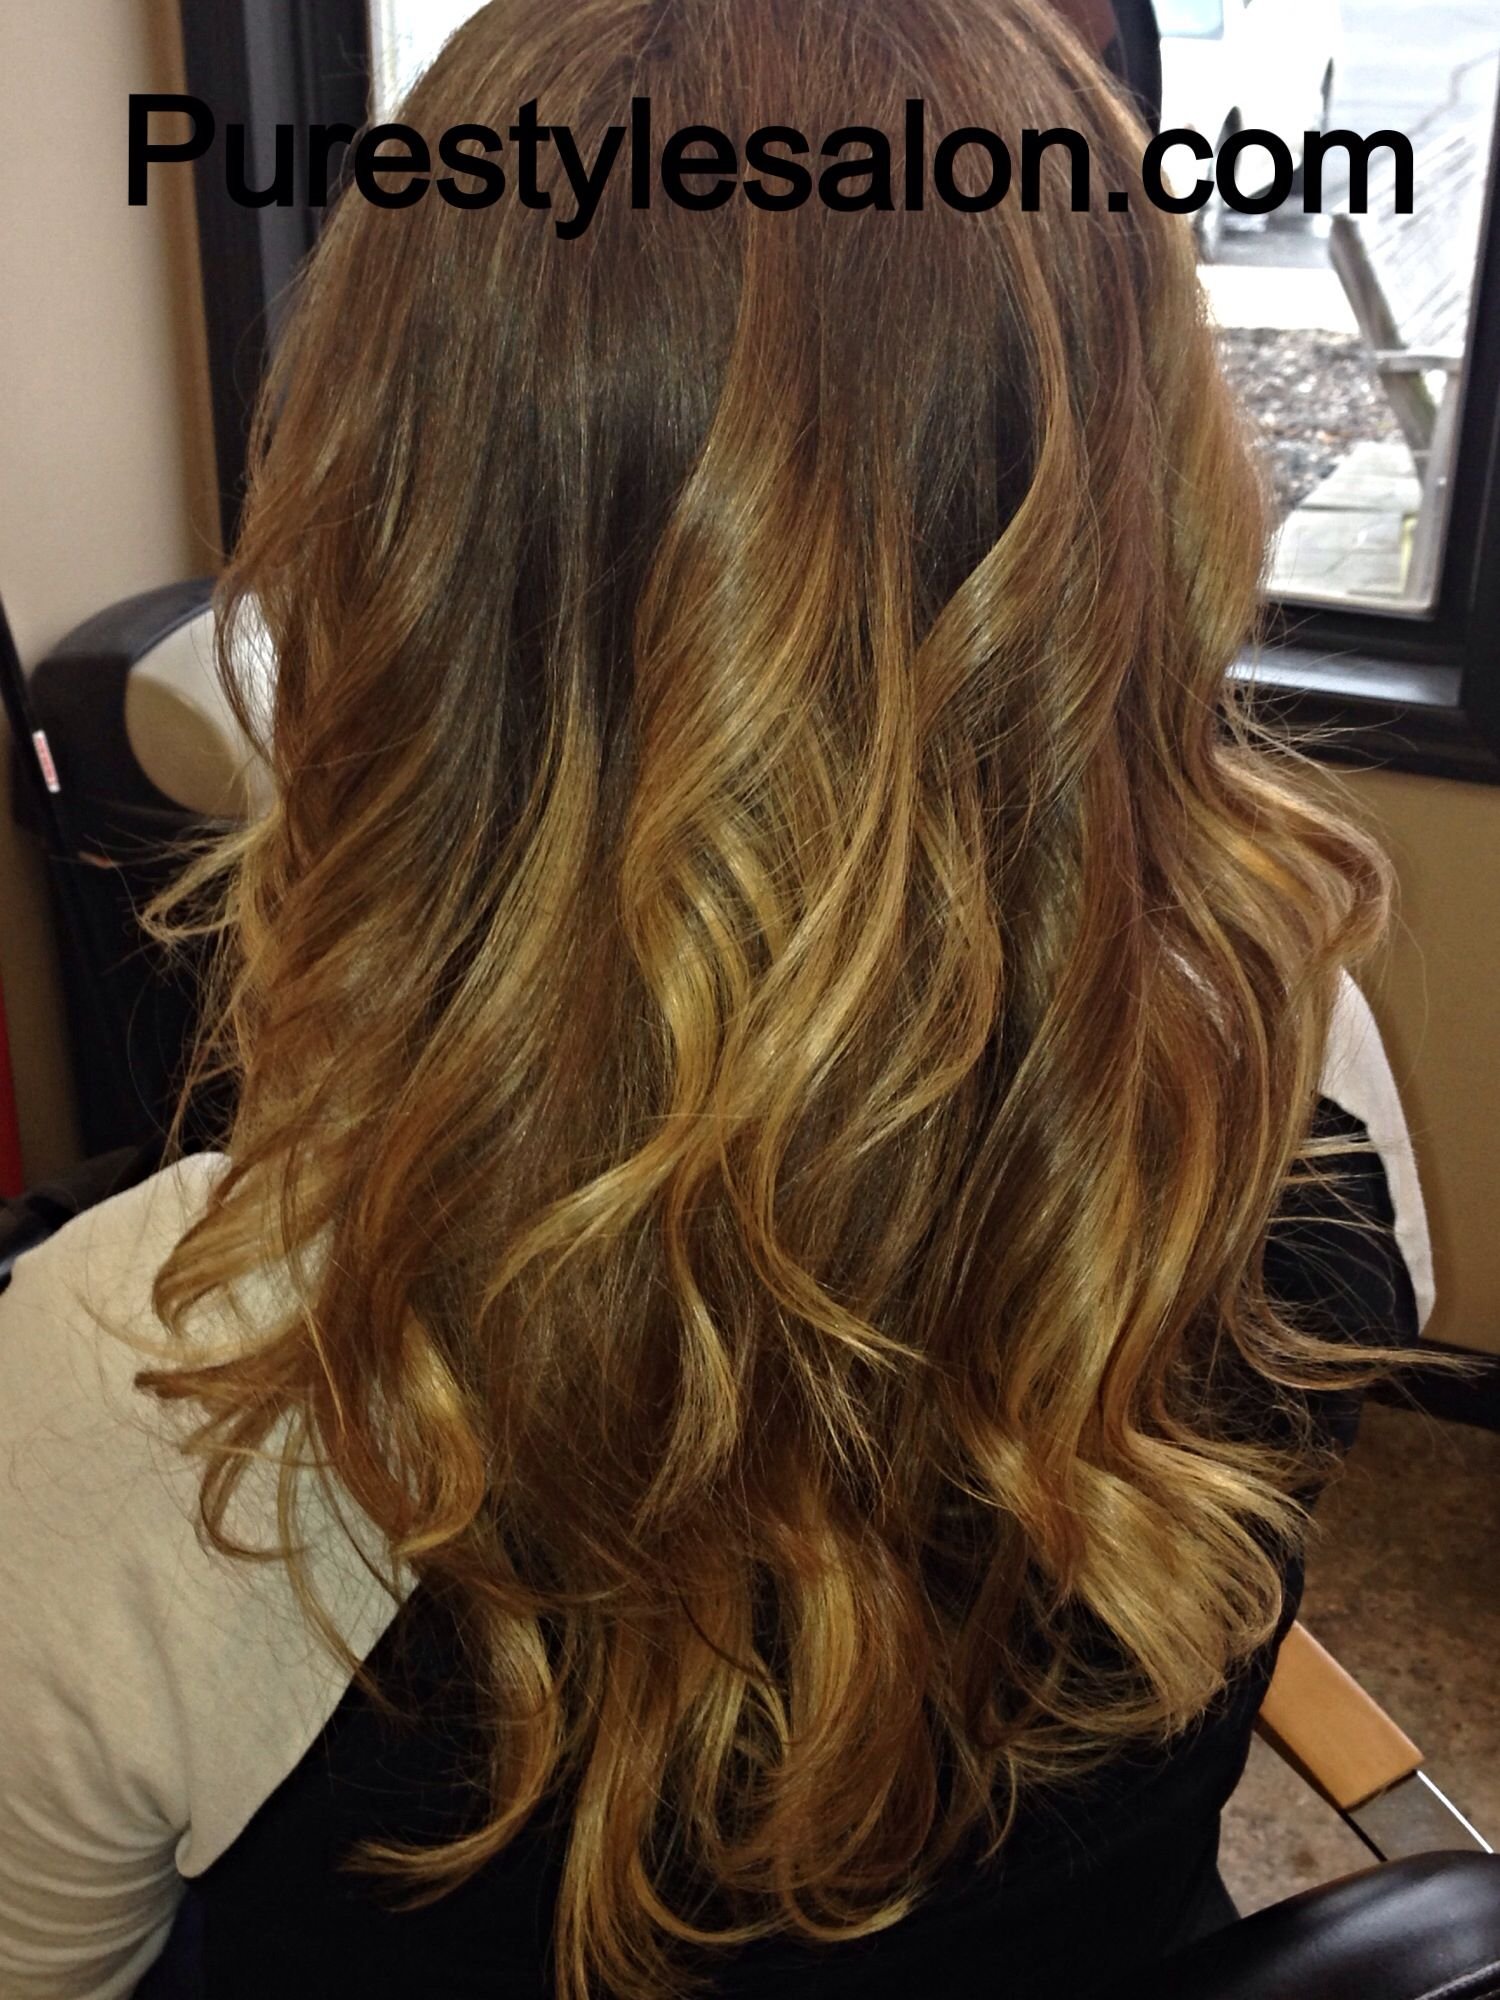 Ombre hair hair pinterest ombre hair ombre and easy diy